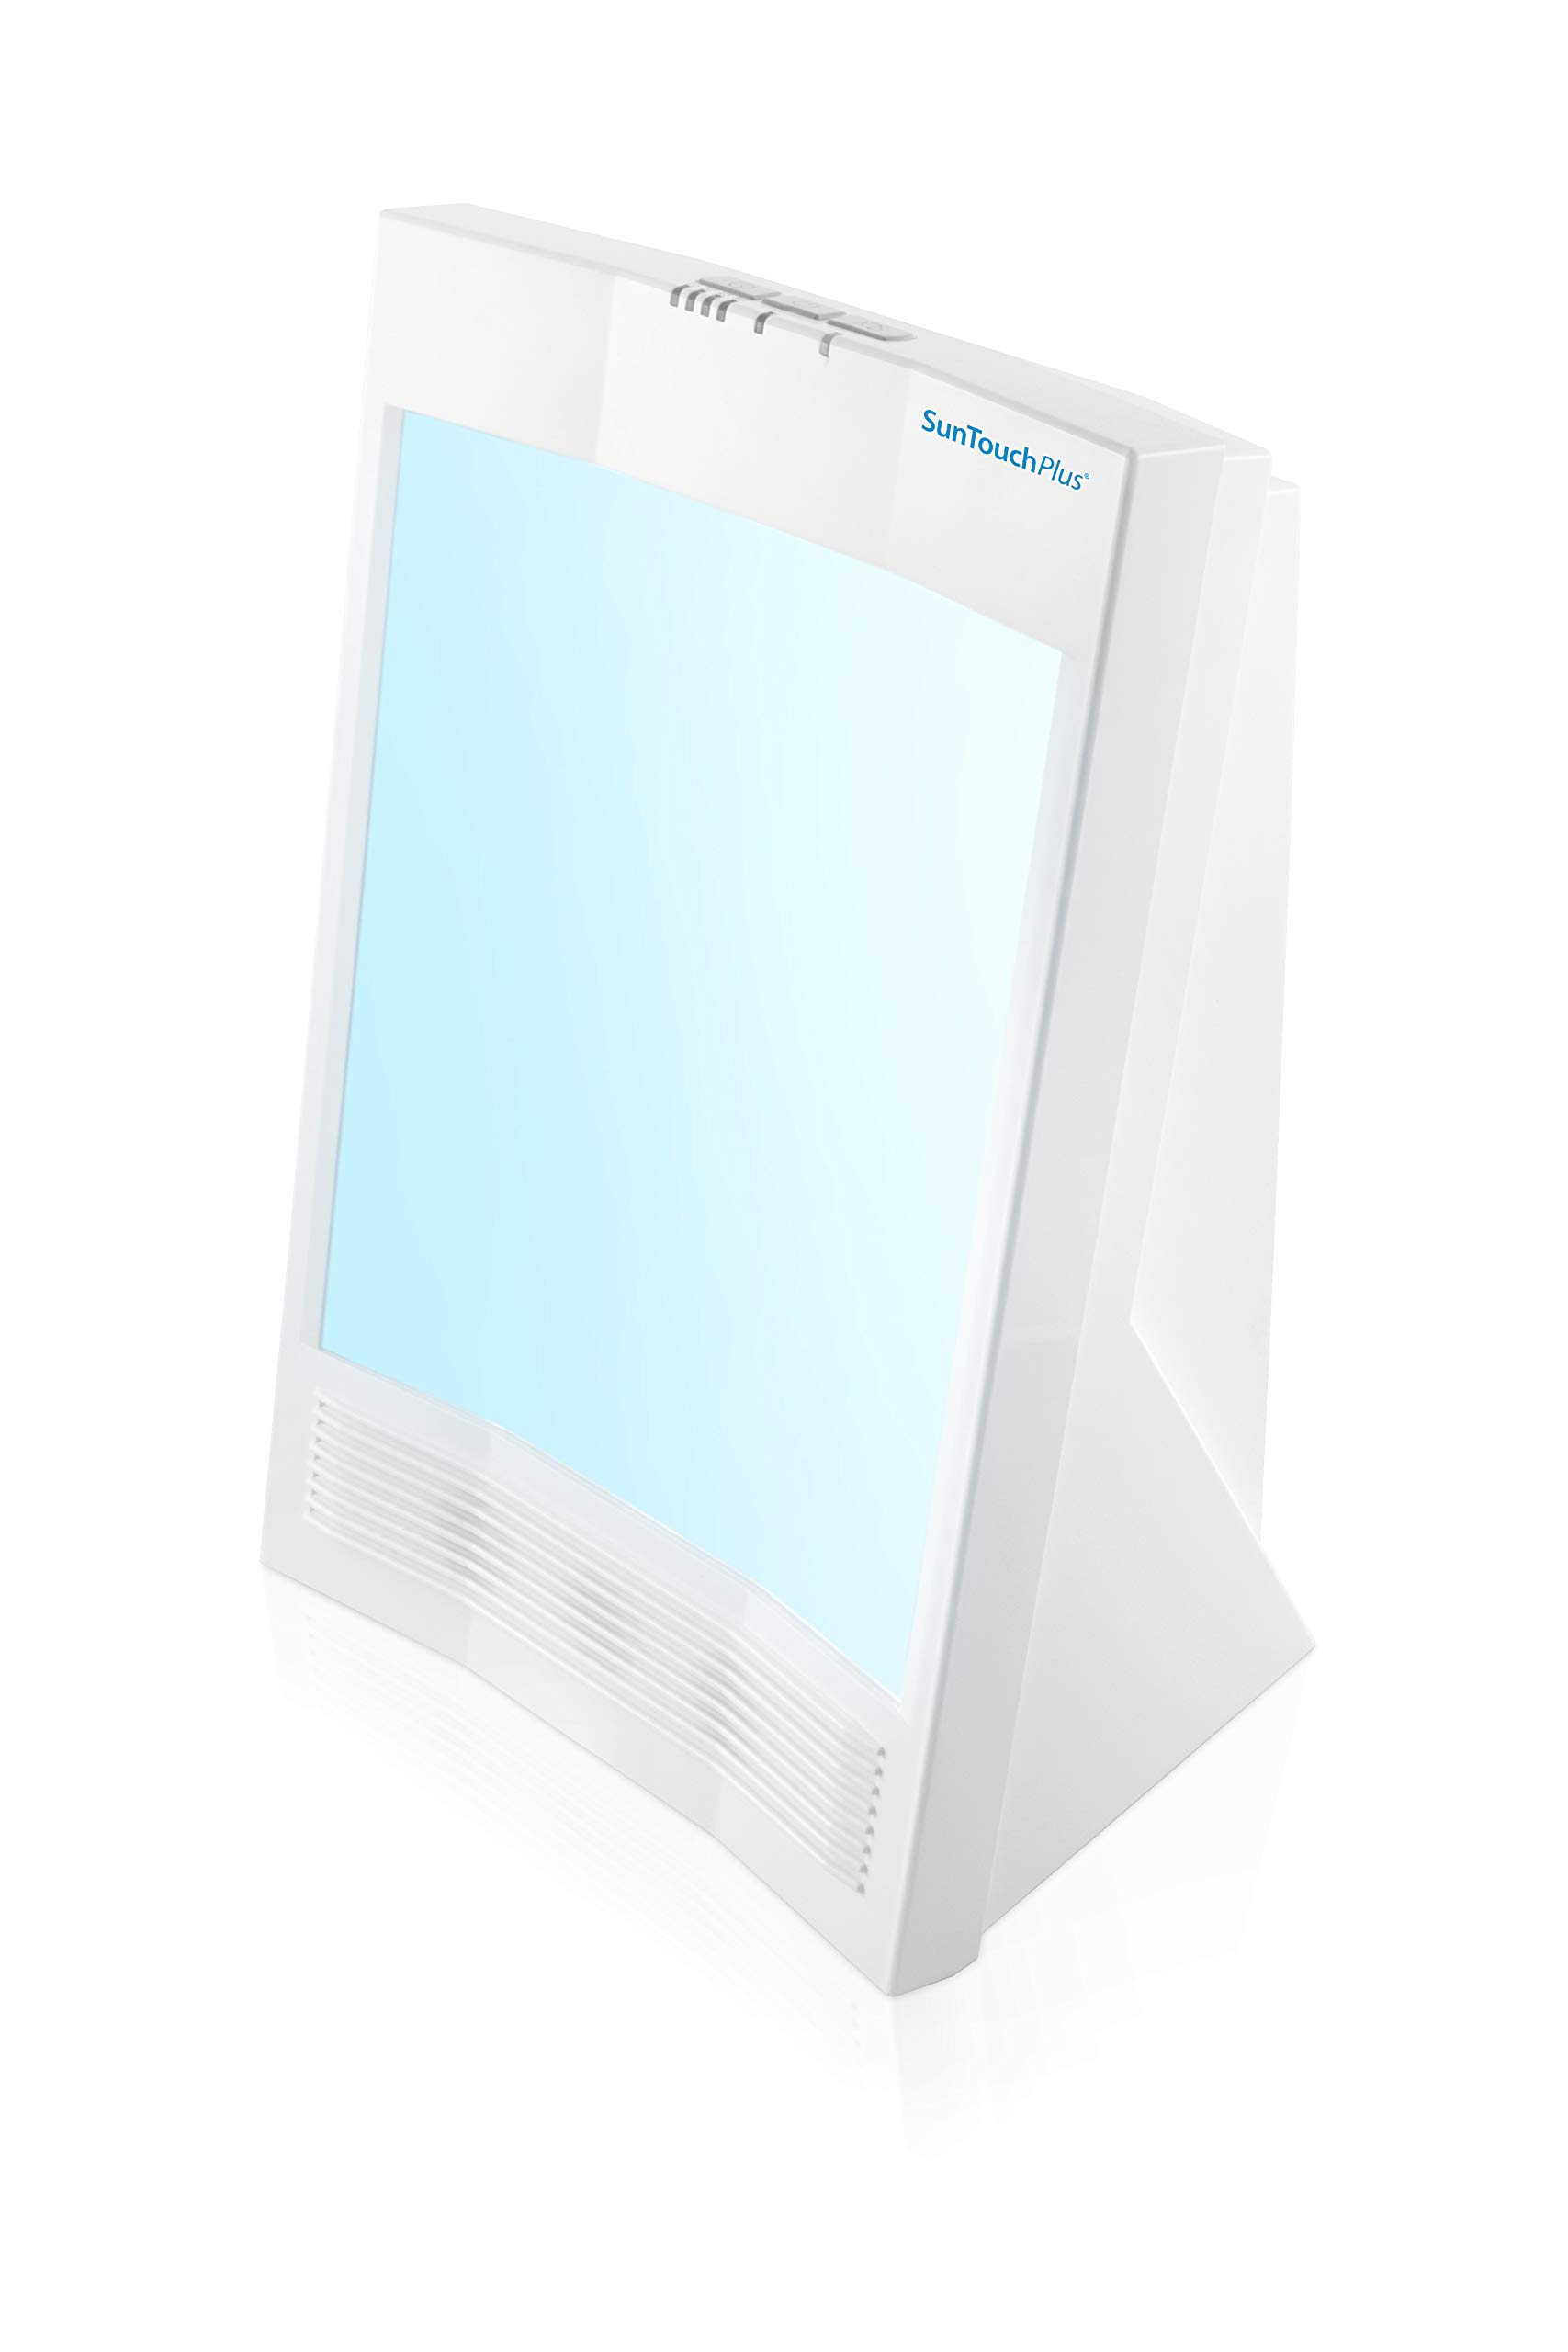 Nature Bright SunTouch Plus Light and Ion Therapy